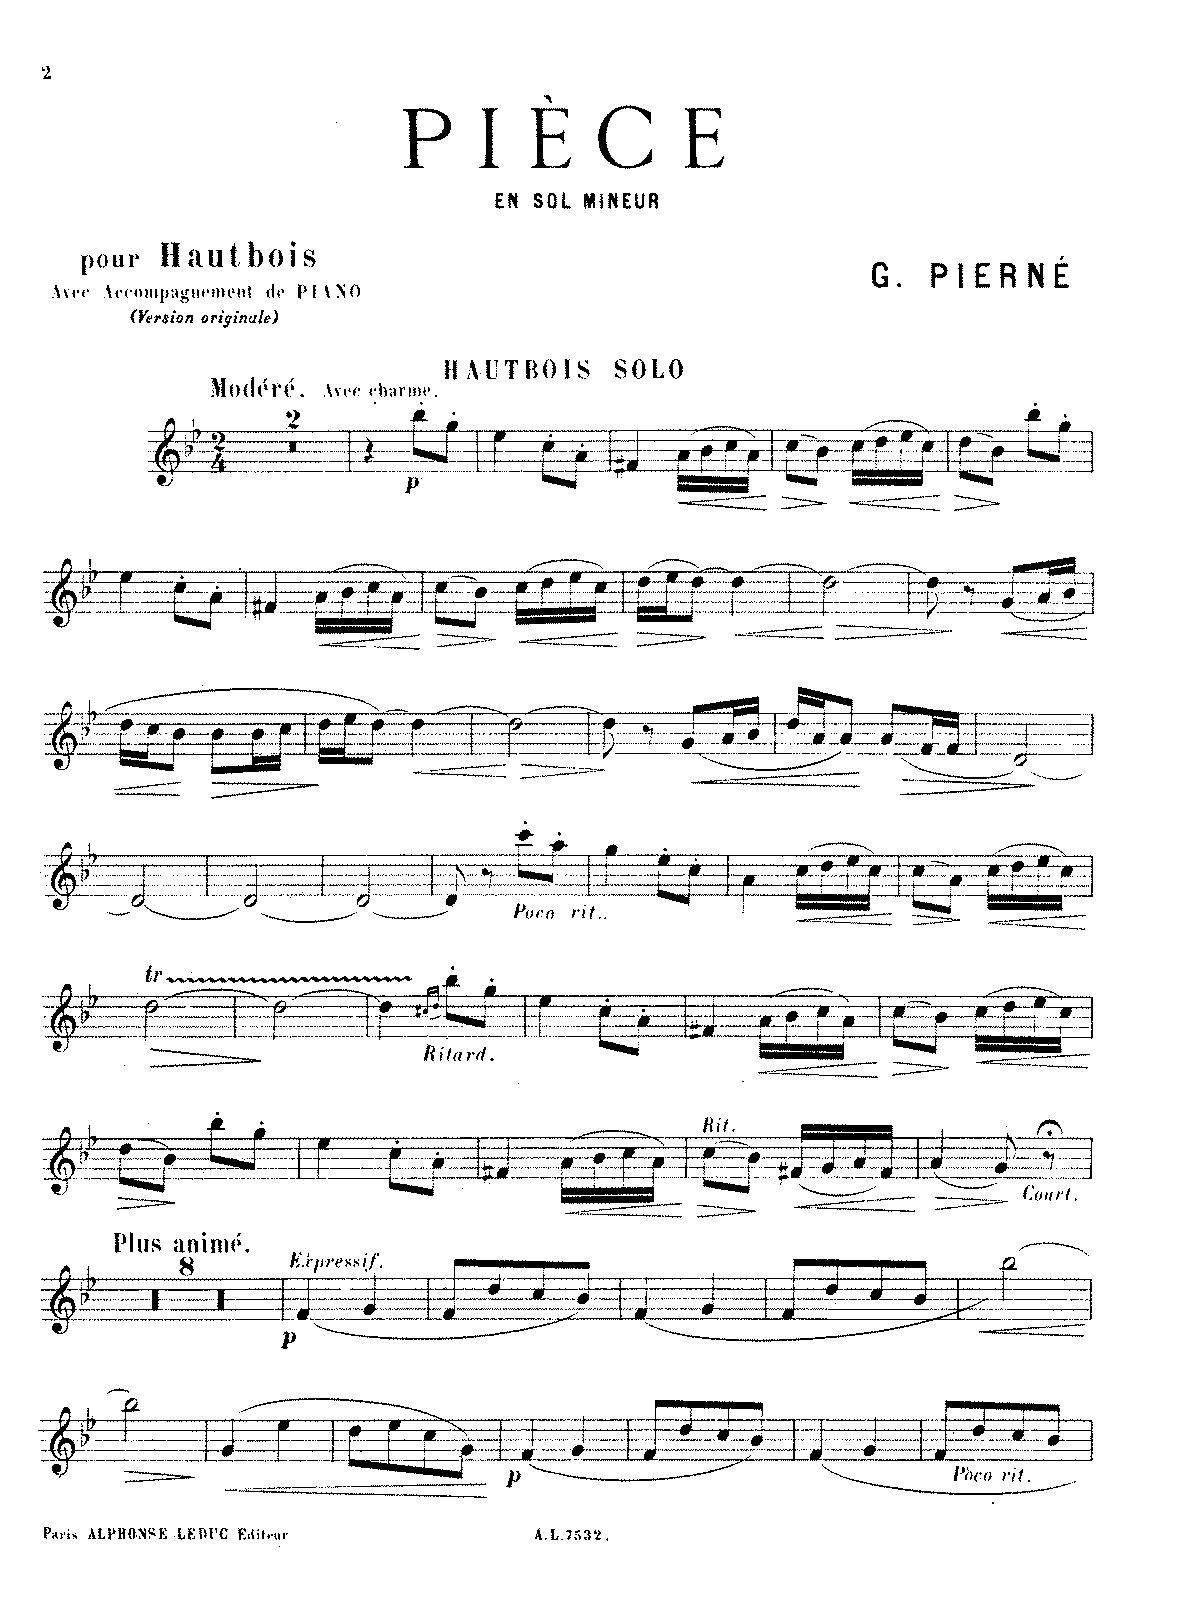 PMLP66010-Pierné - Pièce for oboe and piano.pdf